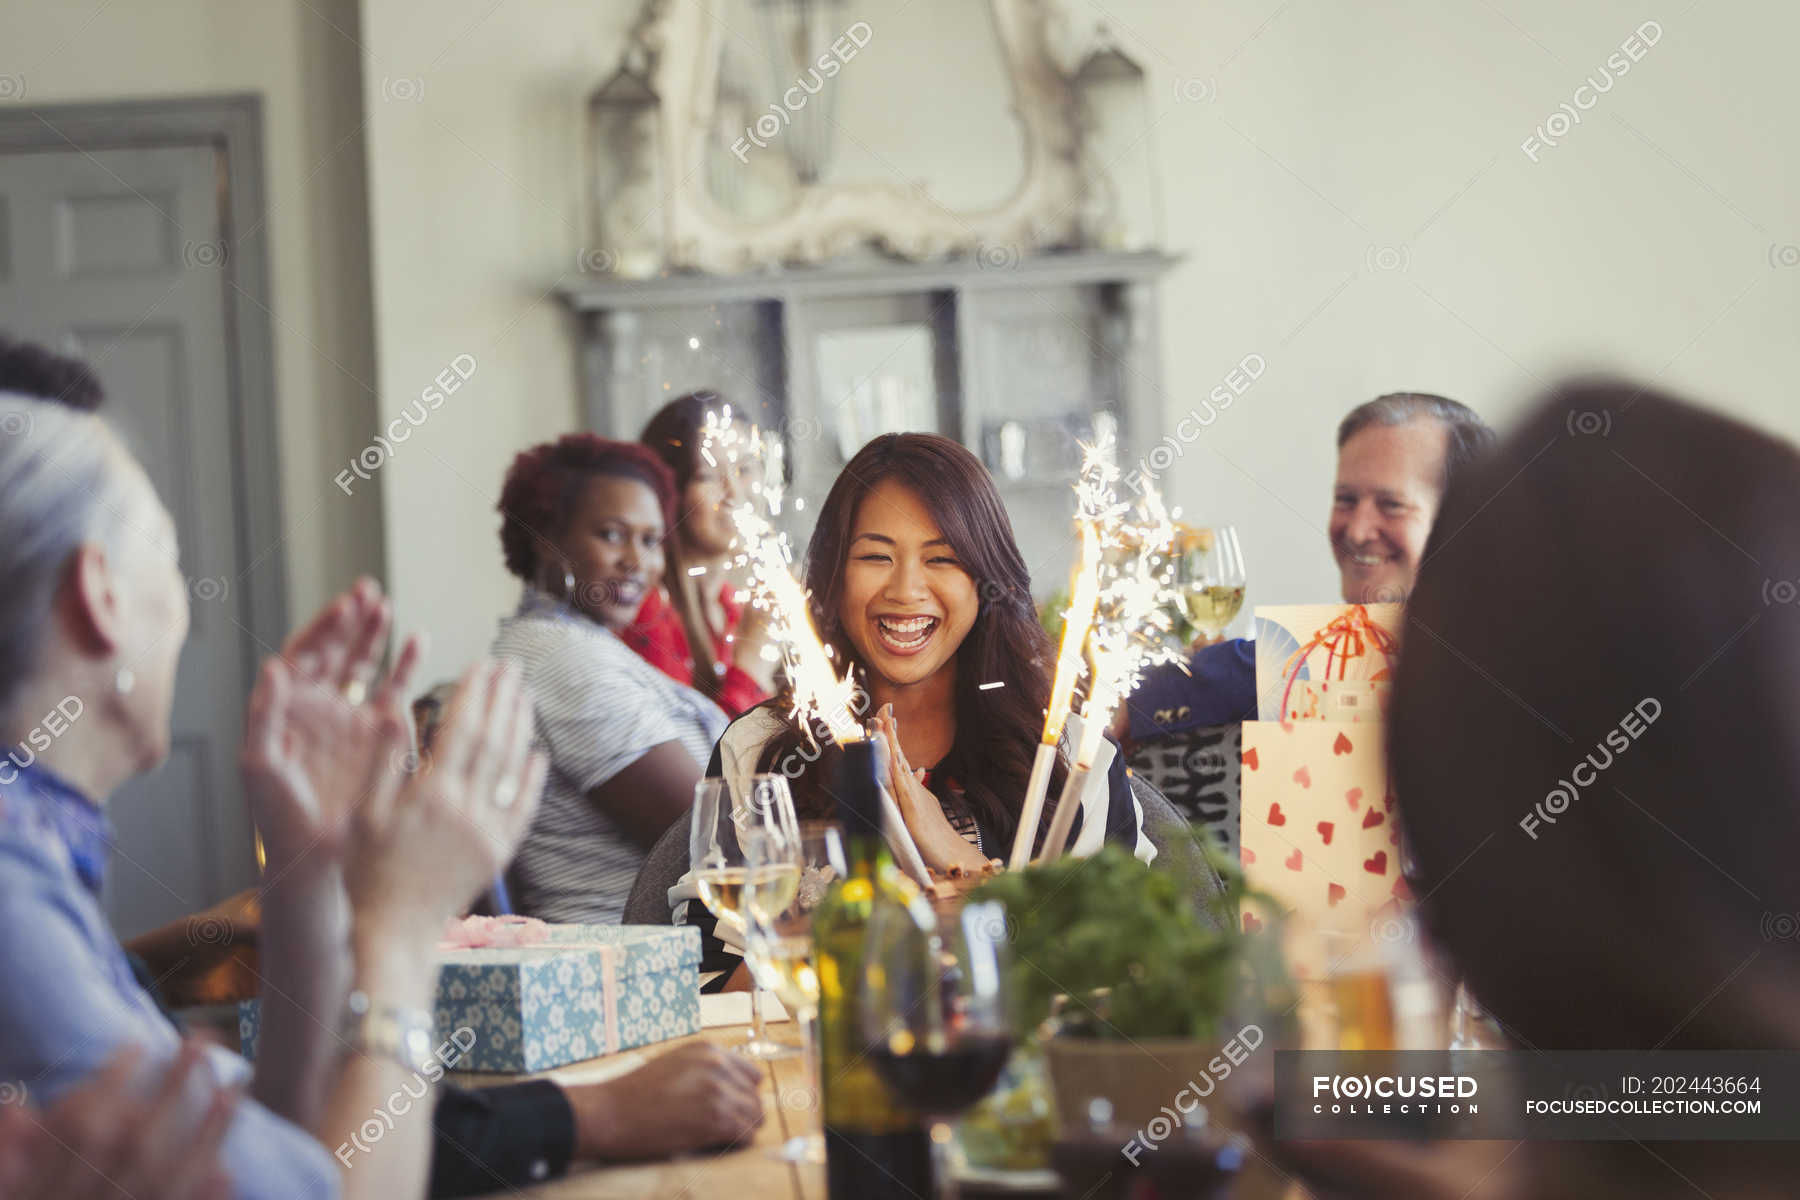 Astonishing Friends Watching Happy Woman With Fireworks Birthday Cake At Funny Birthday Cards Online Bapapcheapnameinfo